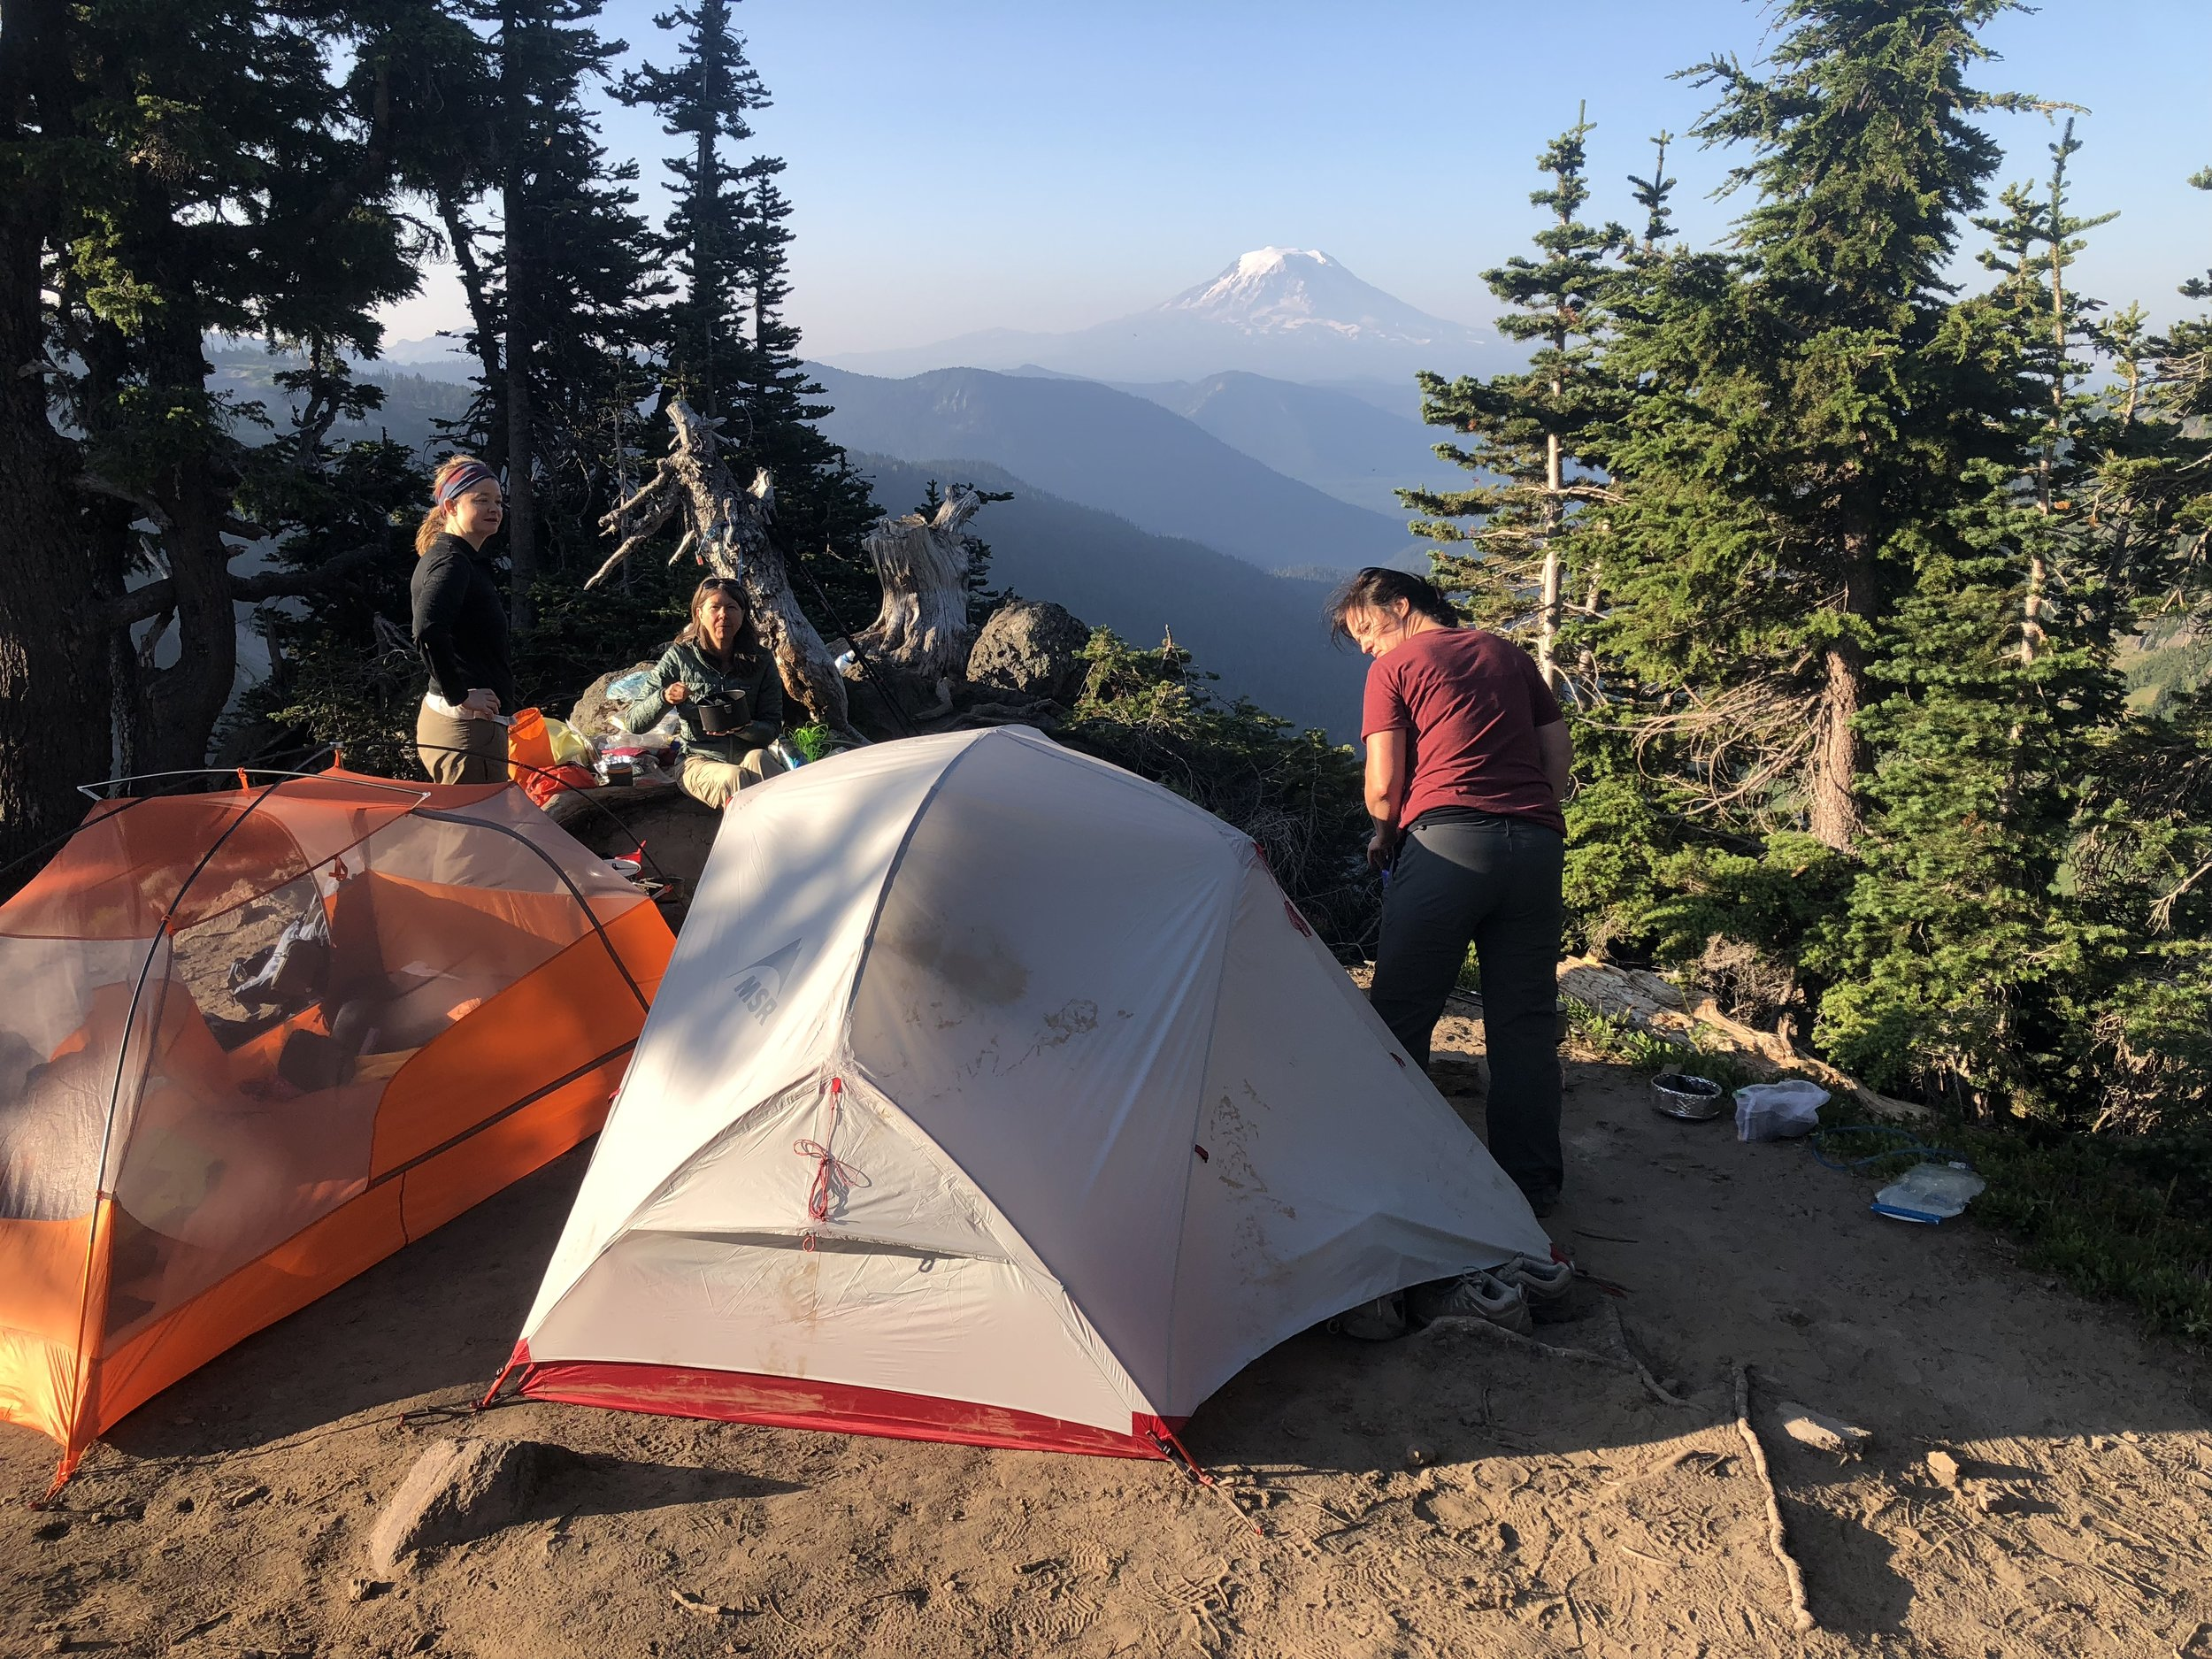 Stunning campsite a thousand feet above the valley and overlooking Mount Adams